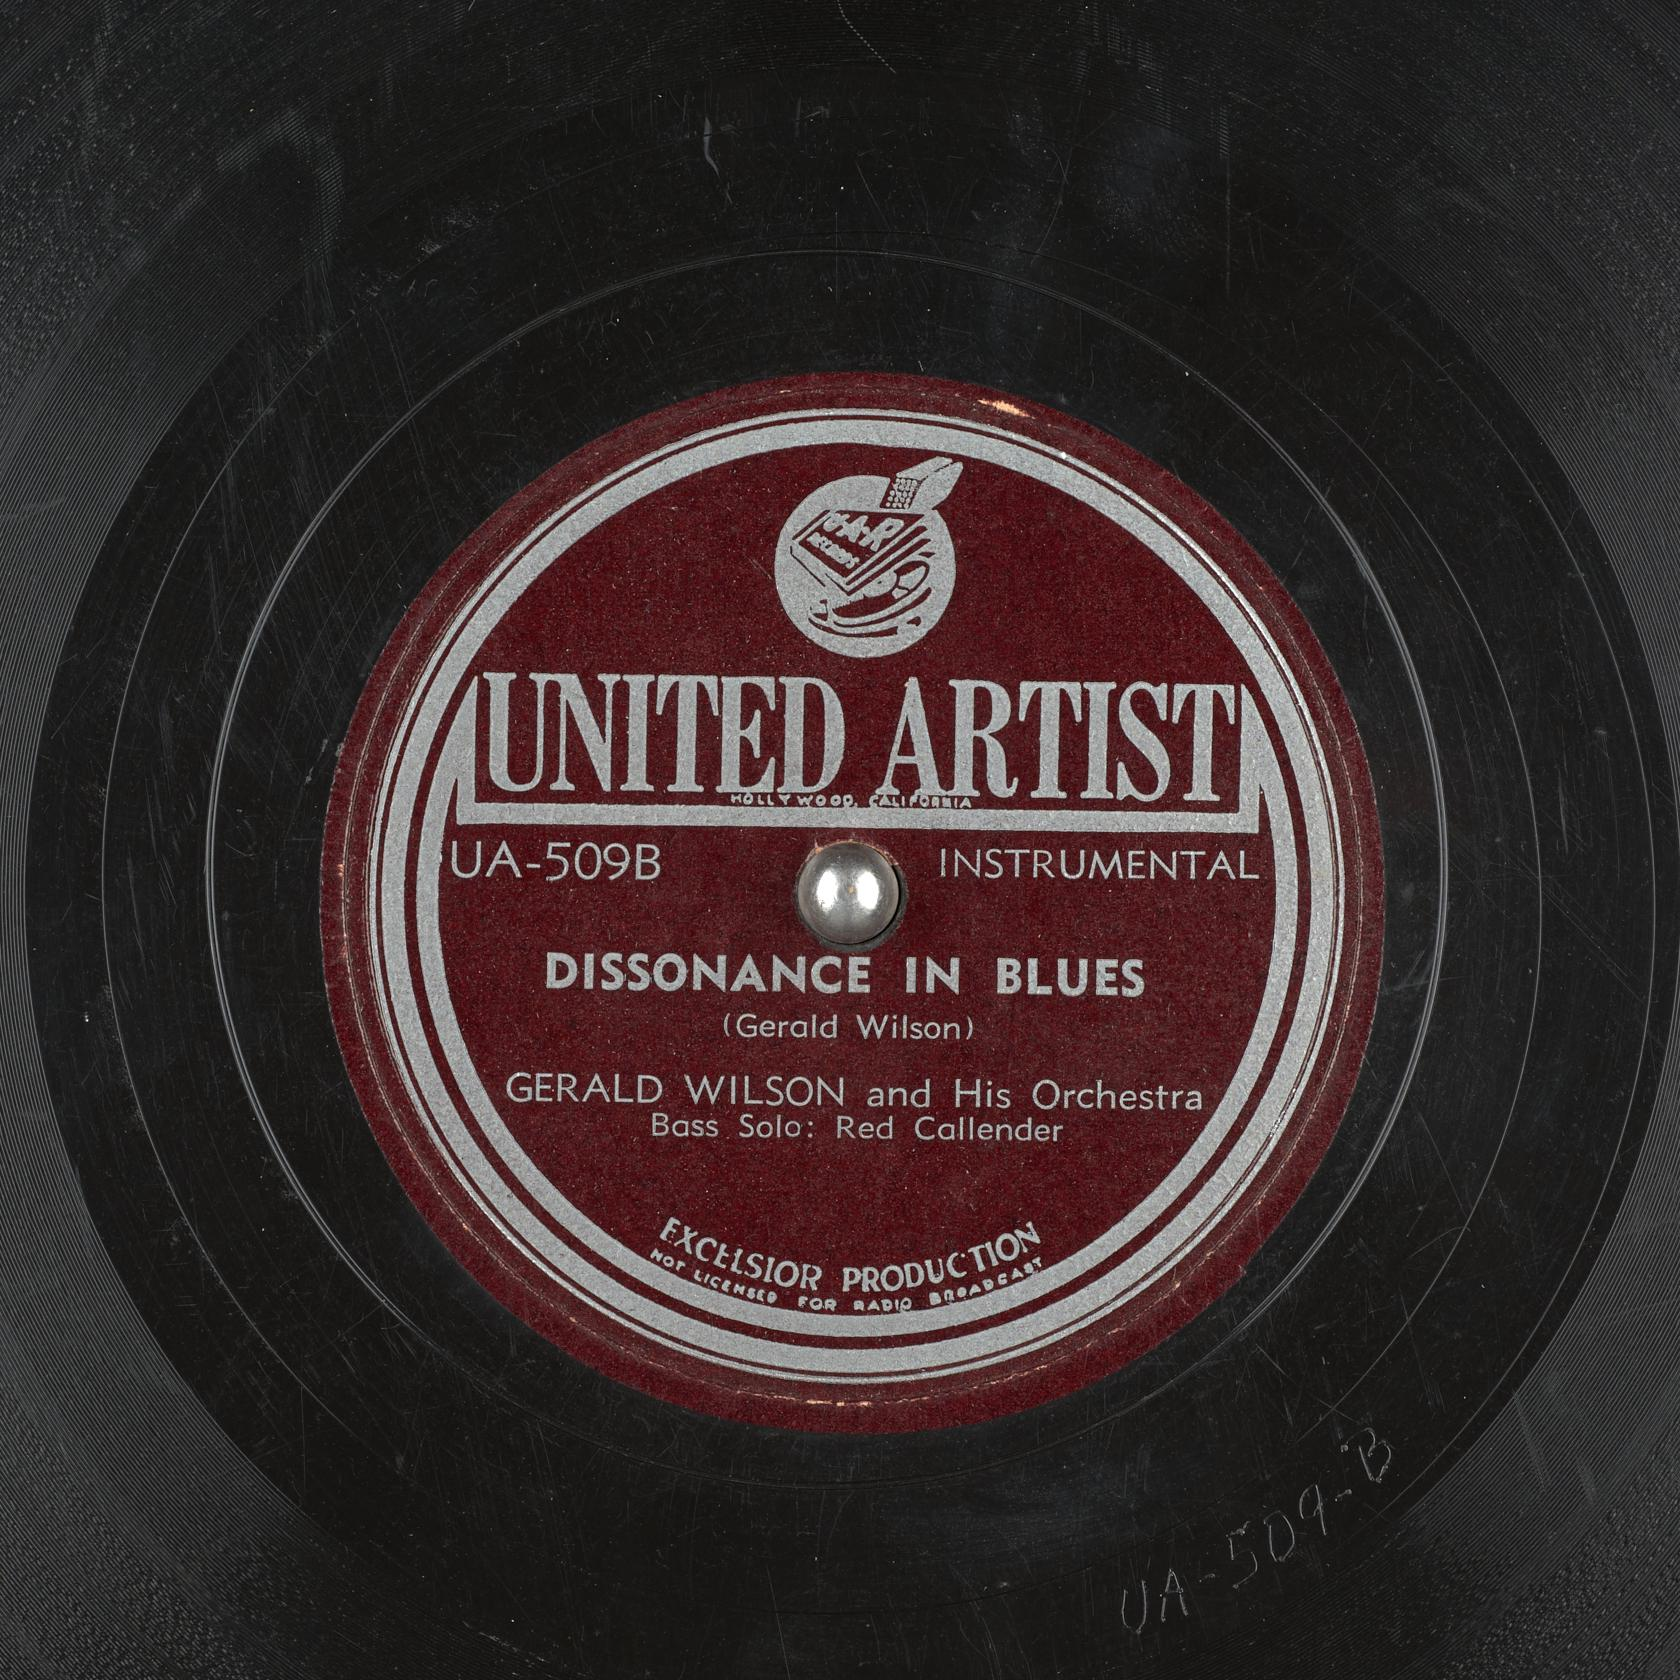 78_dissonance-in-blues_gerald-wilson-and